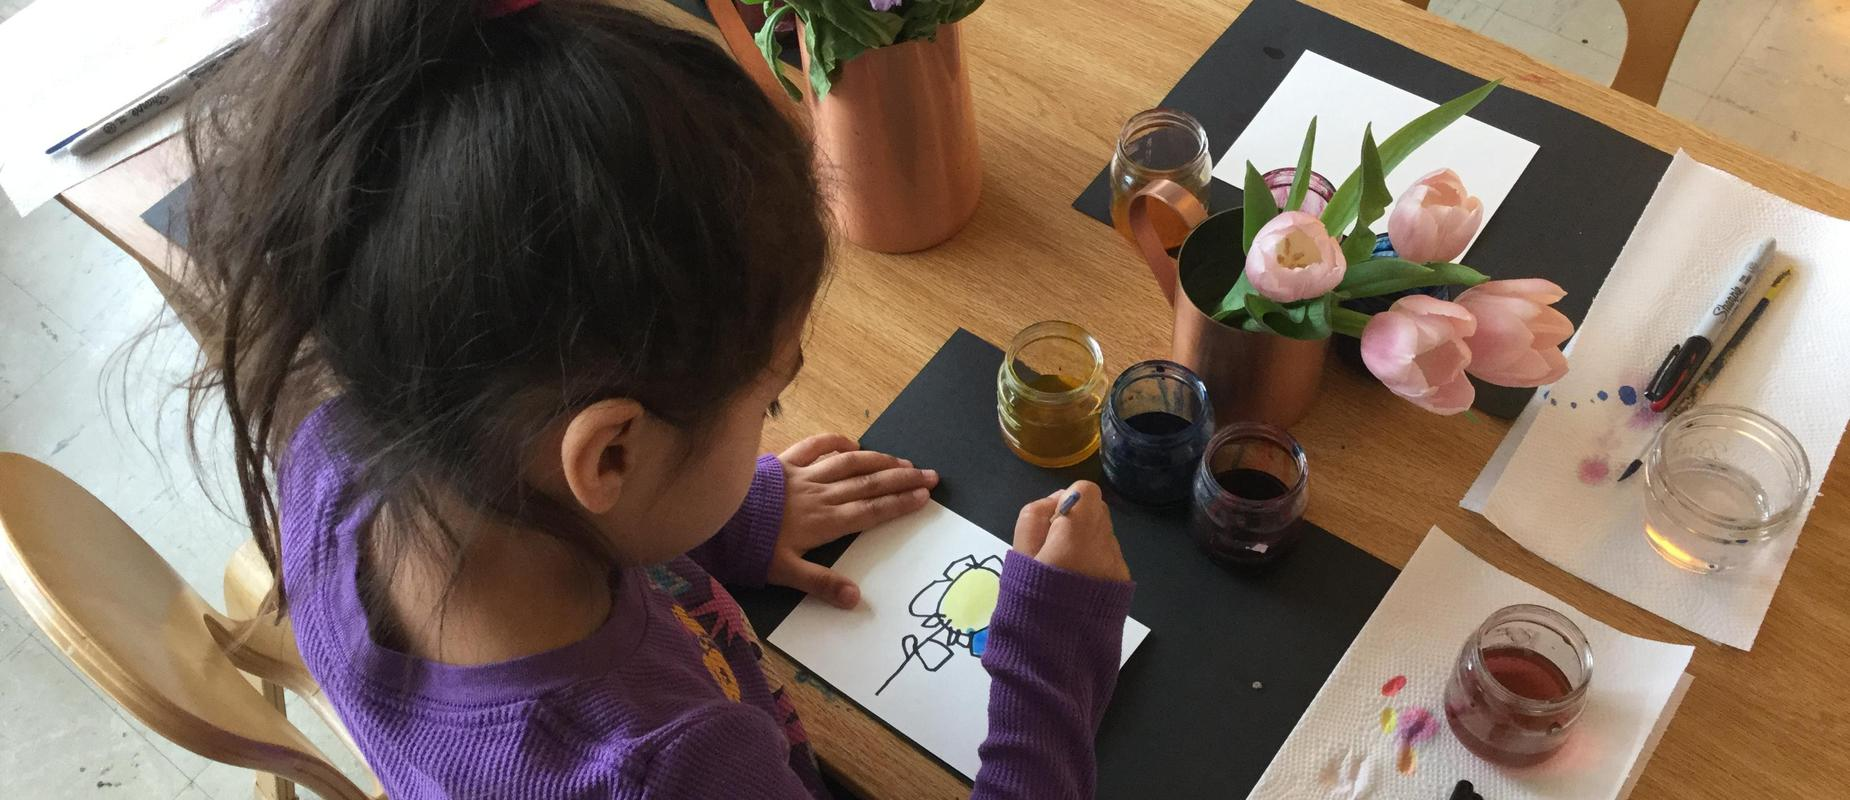 girl painting flowers